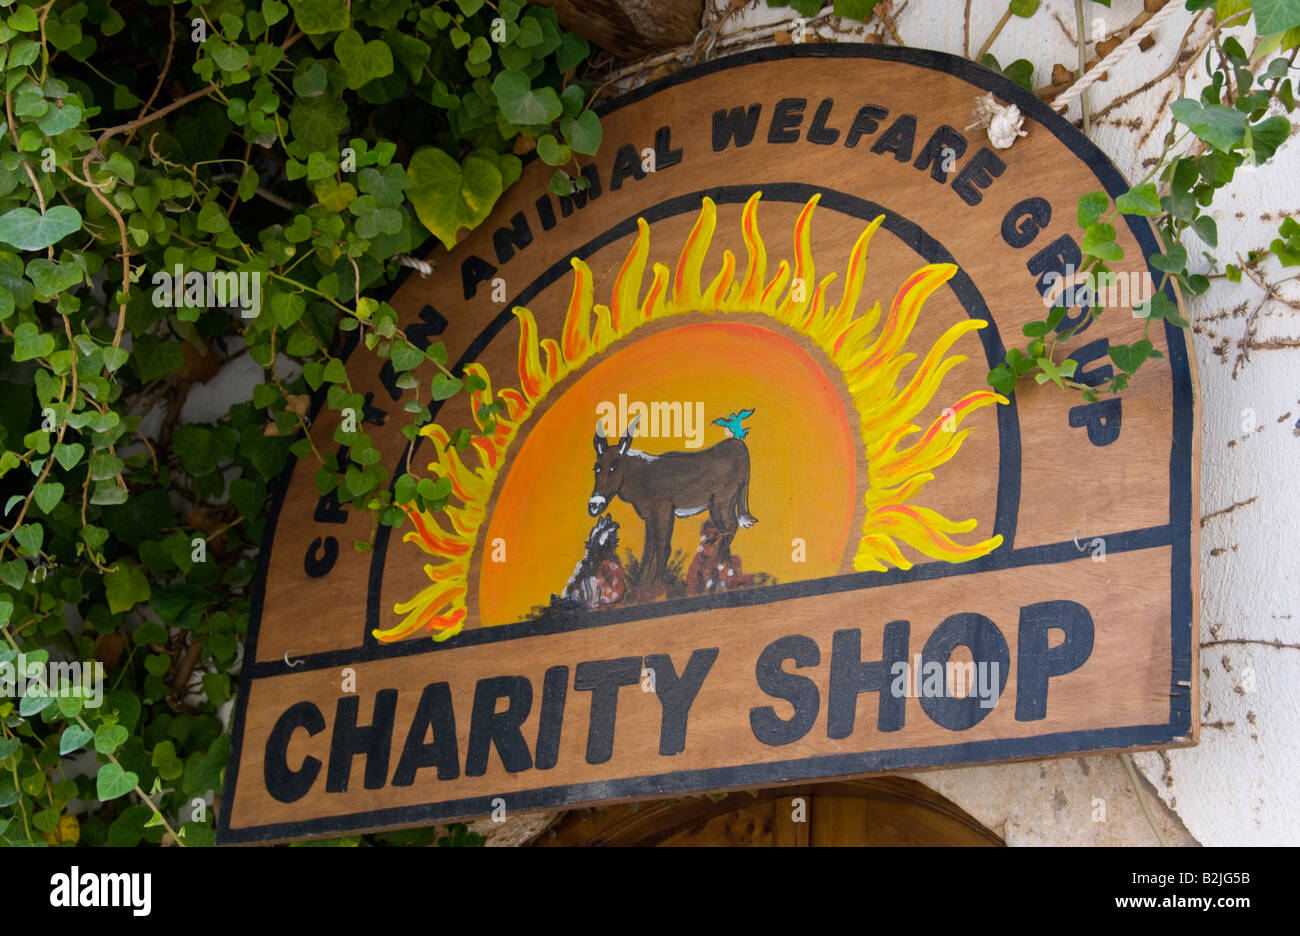 Charity shop sign for animal welfare group in Malia Old Town on the Greek Mediterranean island of Crete GR EU - Stock Image